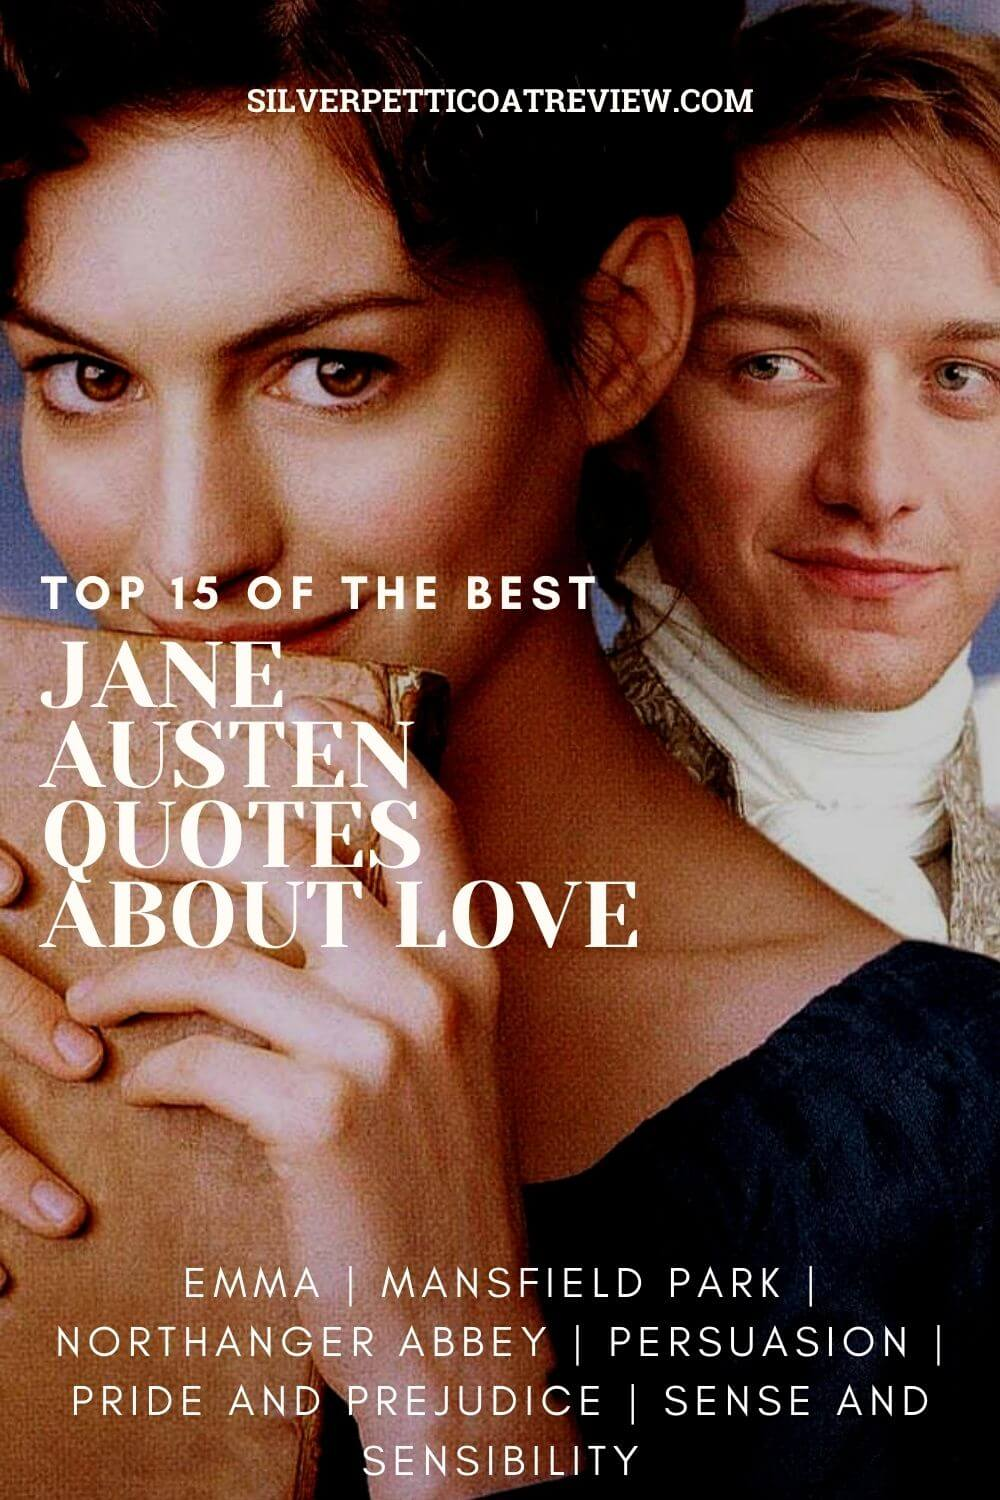 Top 15 of the Best Jane Austen Quotes About Love - Pinterest graphic